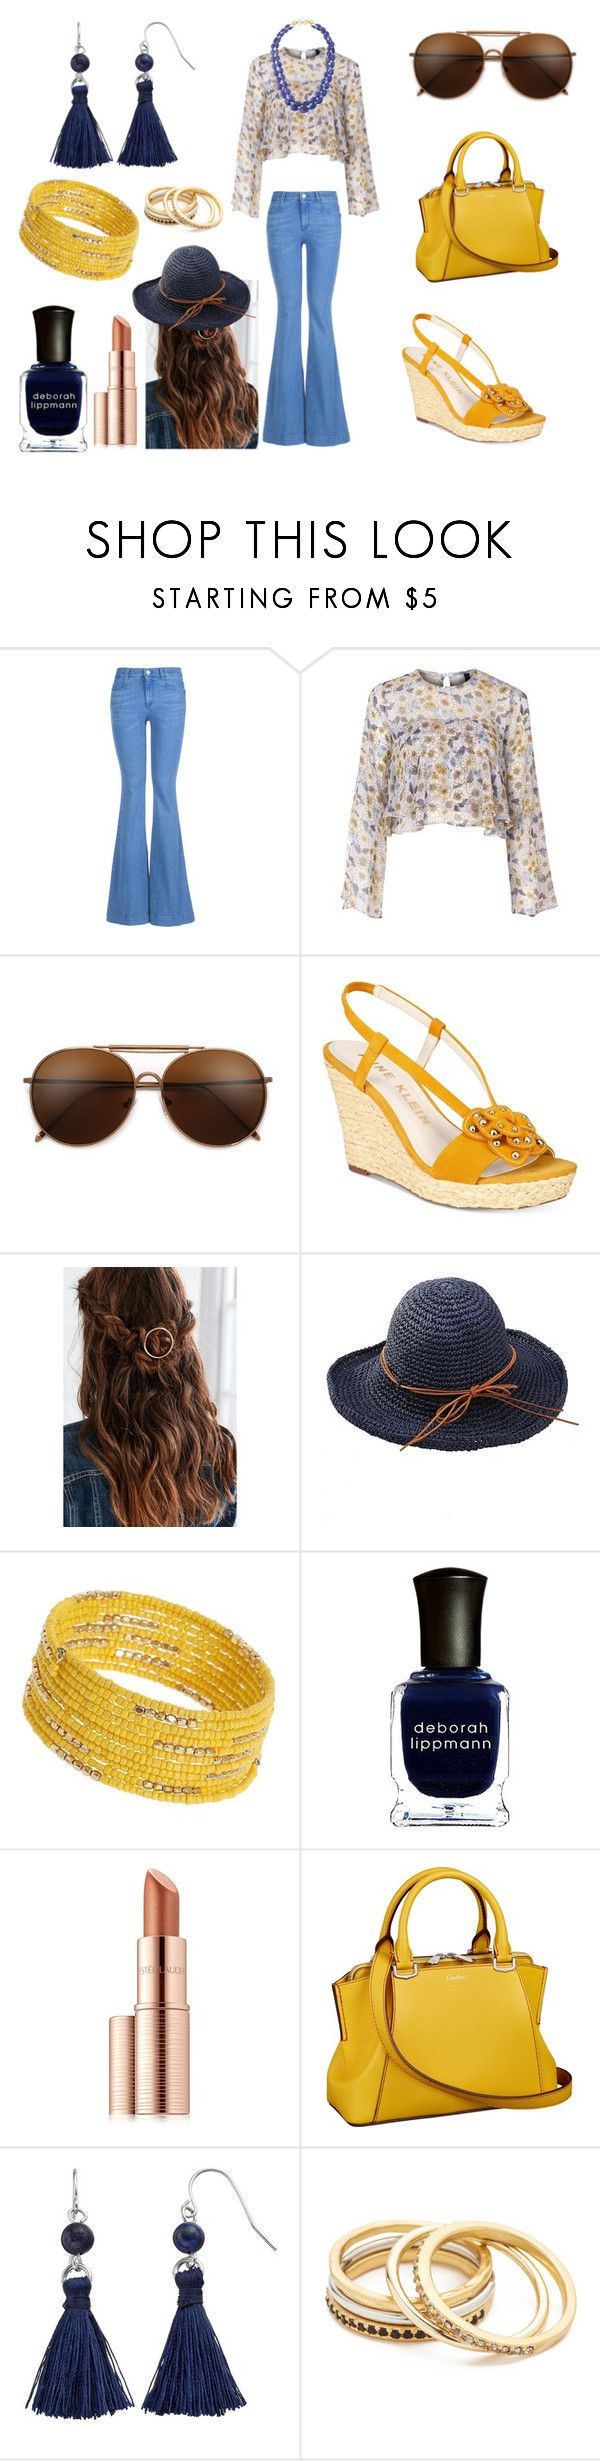 """""""Retro '70s Outfit"""" by holly32196-1 on Polyvore featuring STELLA McCARTNEY, Nobody's Child, Anne Klein, Urban Outfitters, Dorothy Perkins, Deborah Lippmann, Estée Lauder, Chaps, Madewell and Splendid Company"""